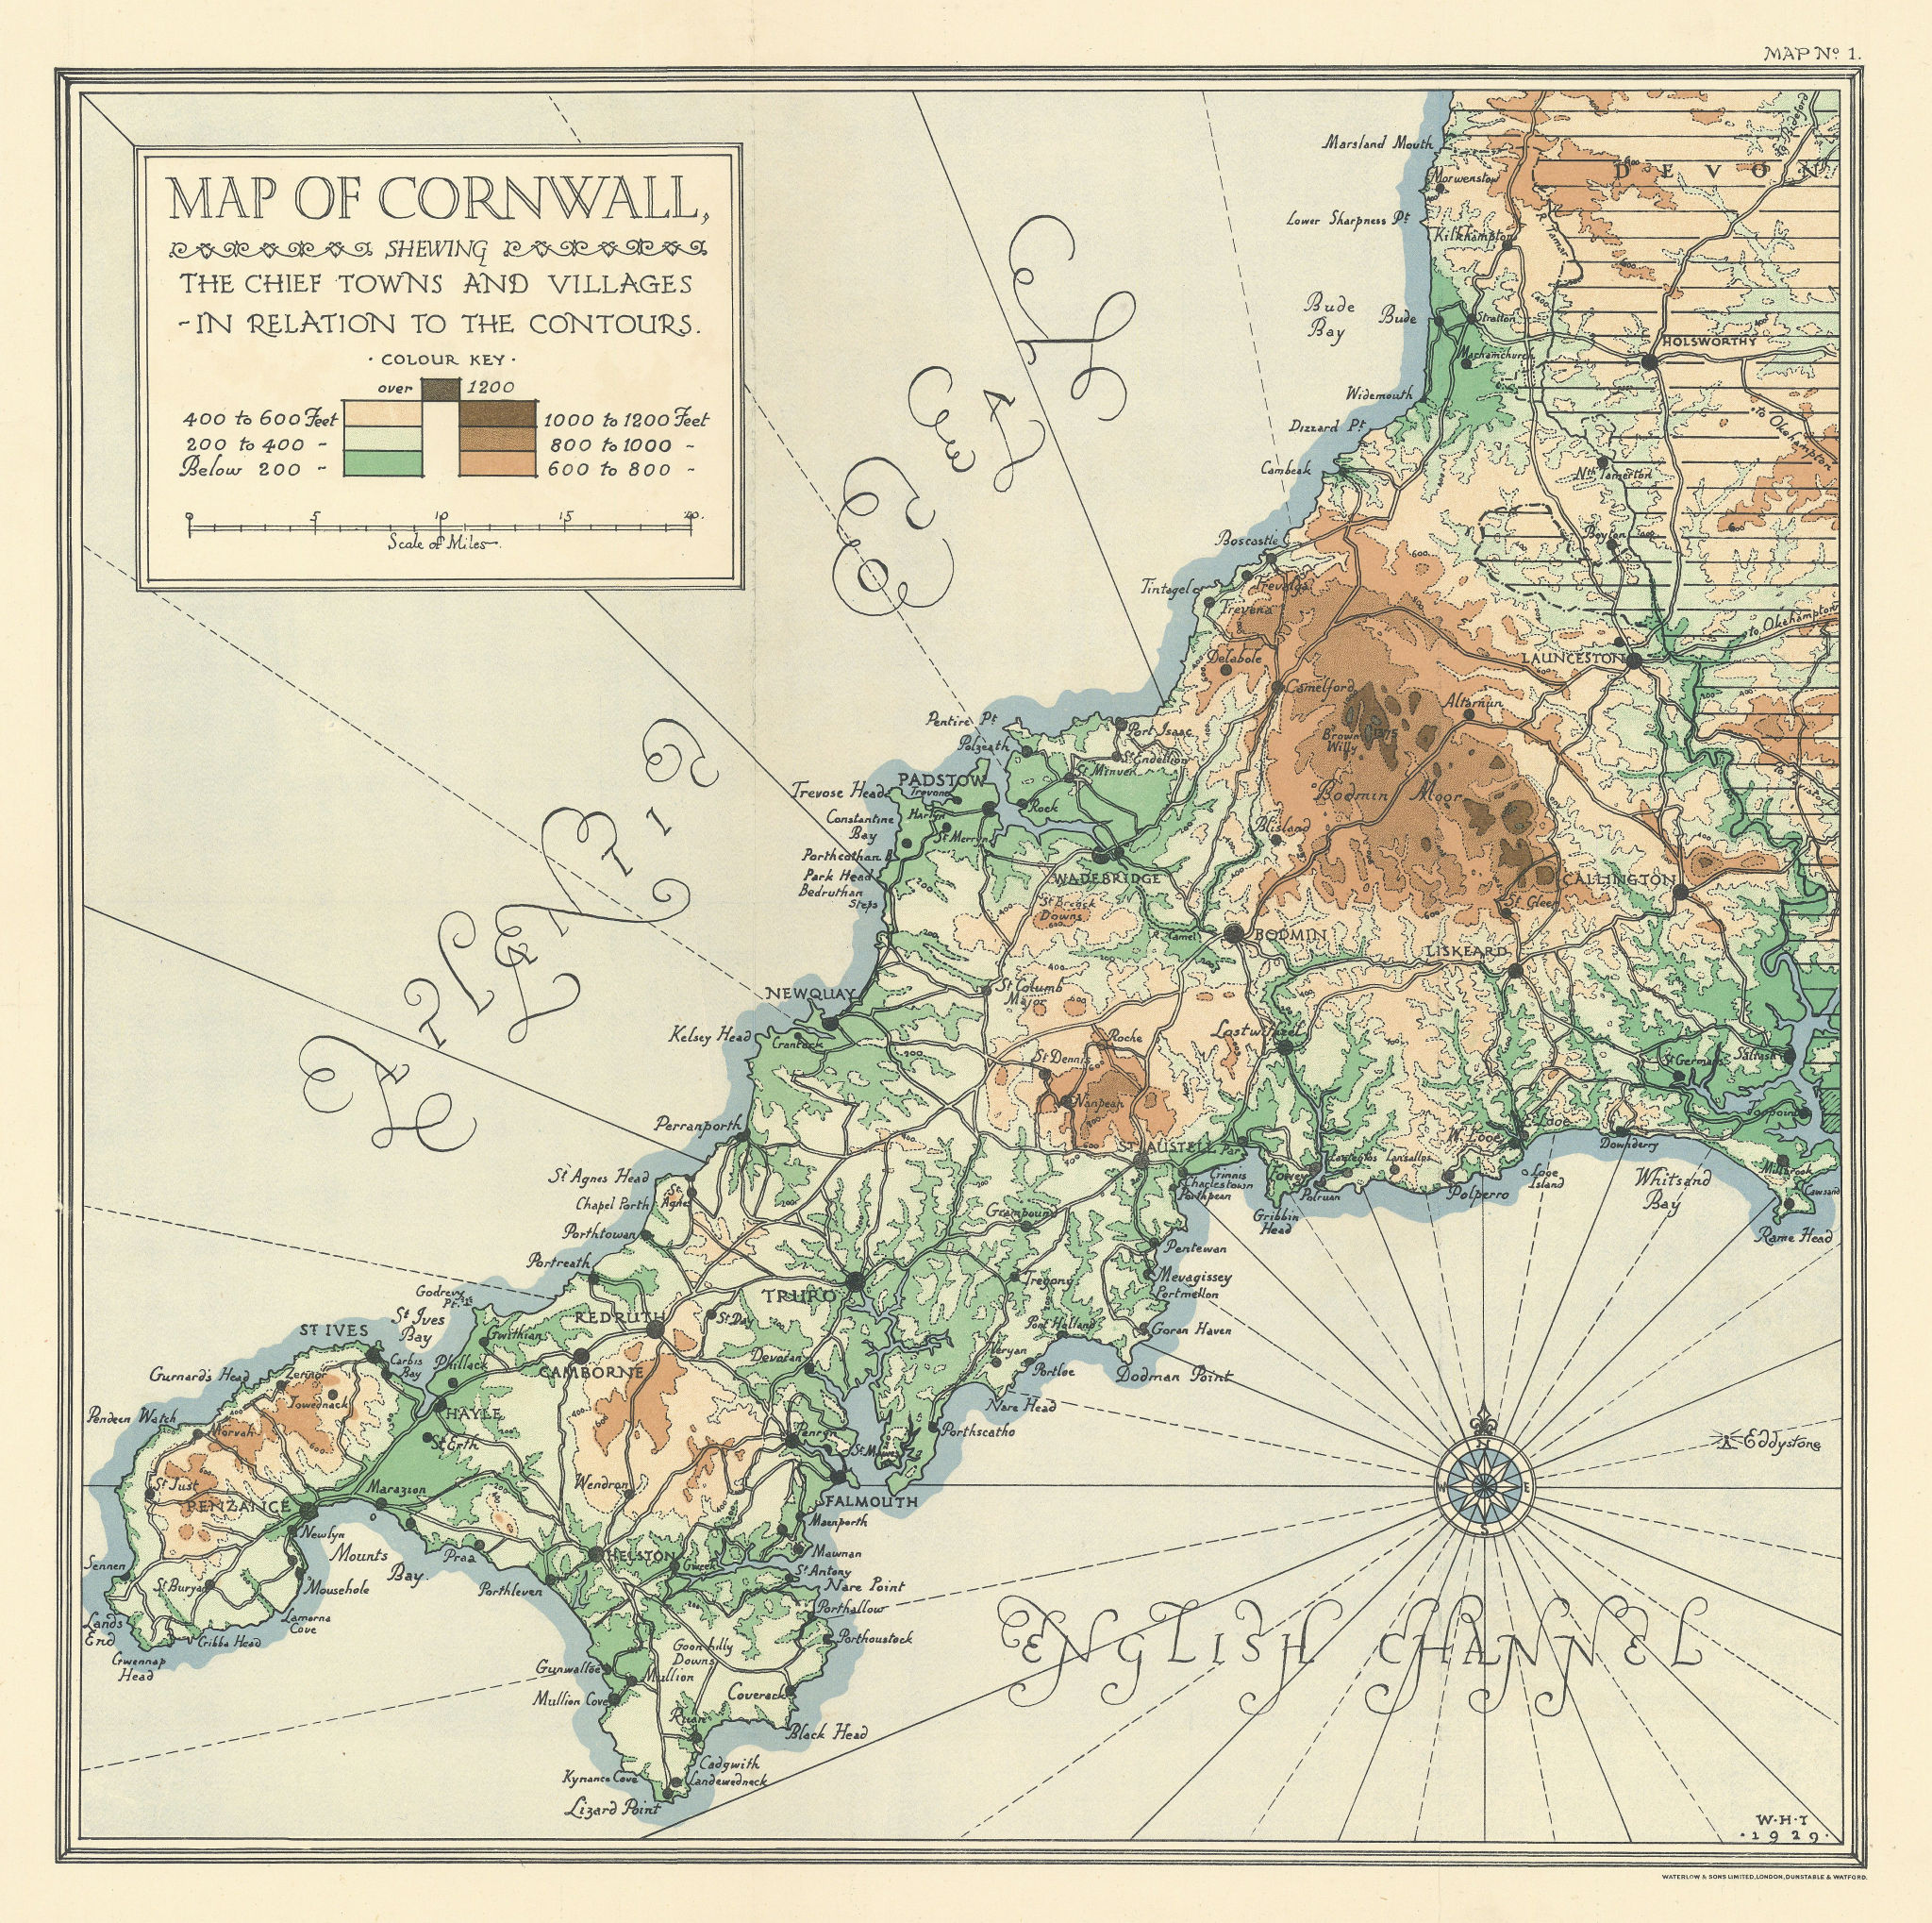 CORNWALL contours. Main towns & villages. HARDING THOMPSON 1930 old map